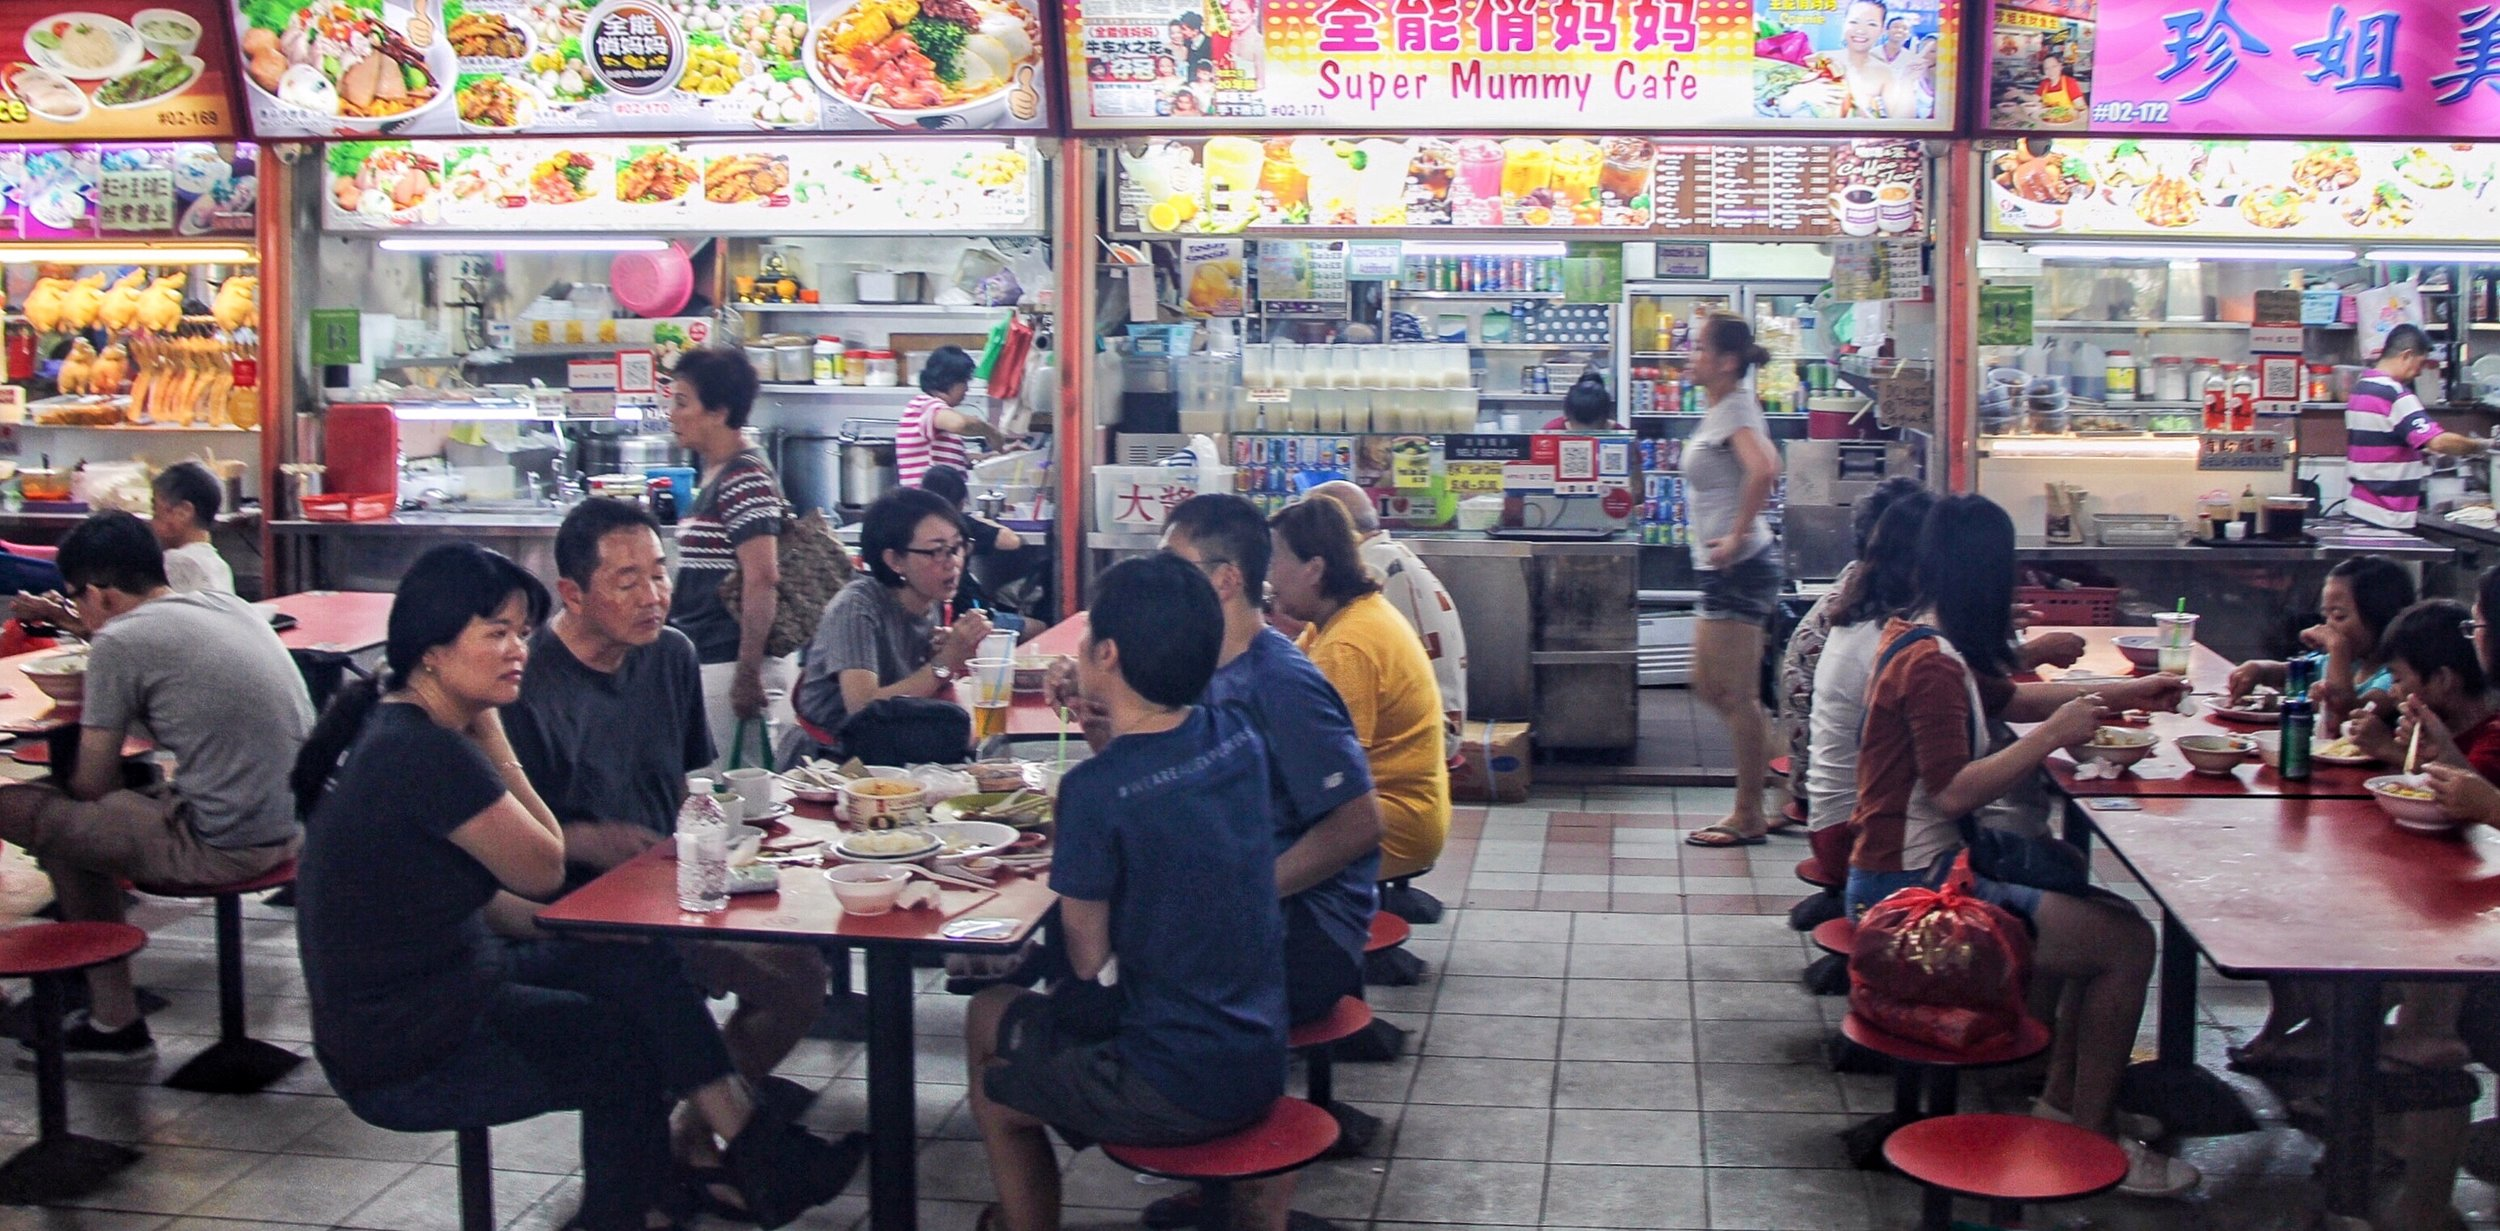 Brightly lit signboards illuminate diners meals at the hawker stalls in Chinatown Food Centre. Each stall displays vibrate photographs of their specialty dish.